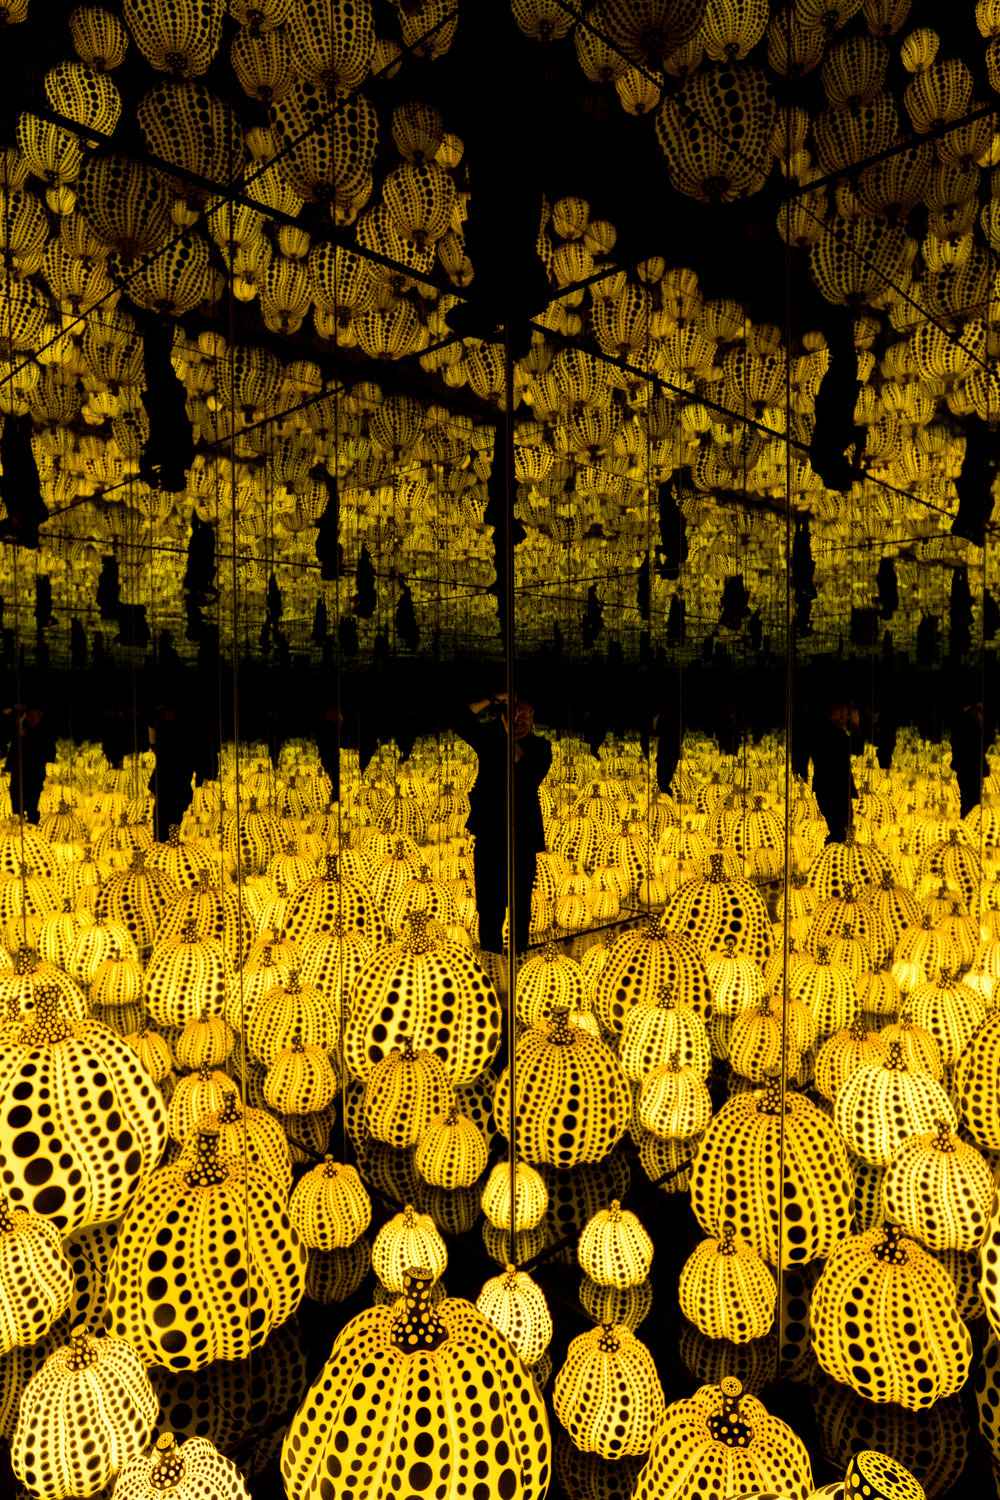 The absurd and inspiring interior of  Infinity Mirrored Room —  All the Eternal Love I Have for the Pumpkins .